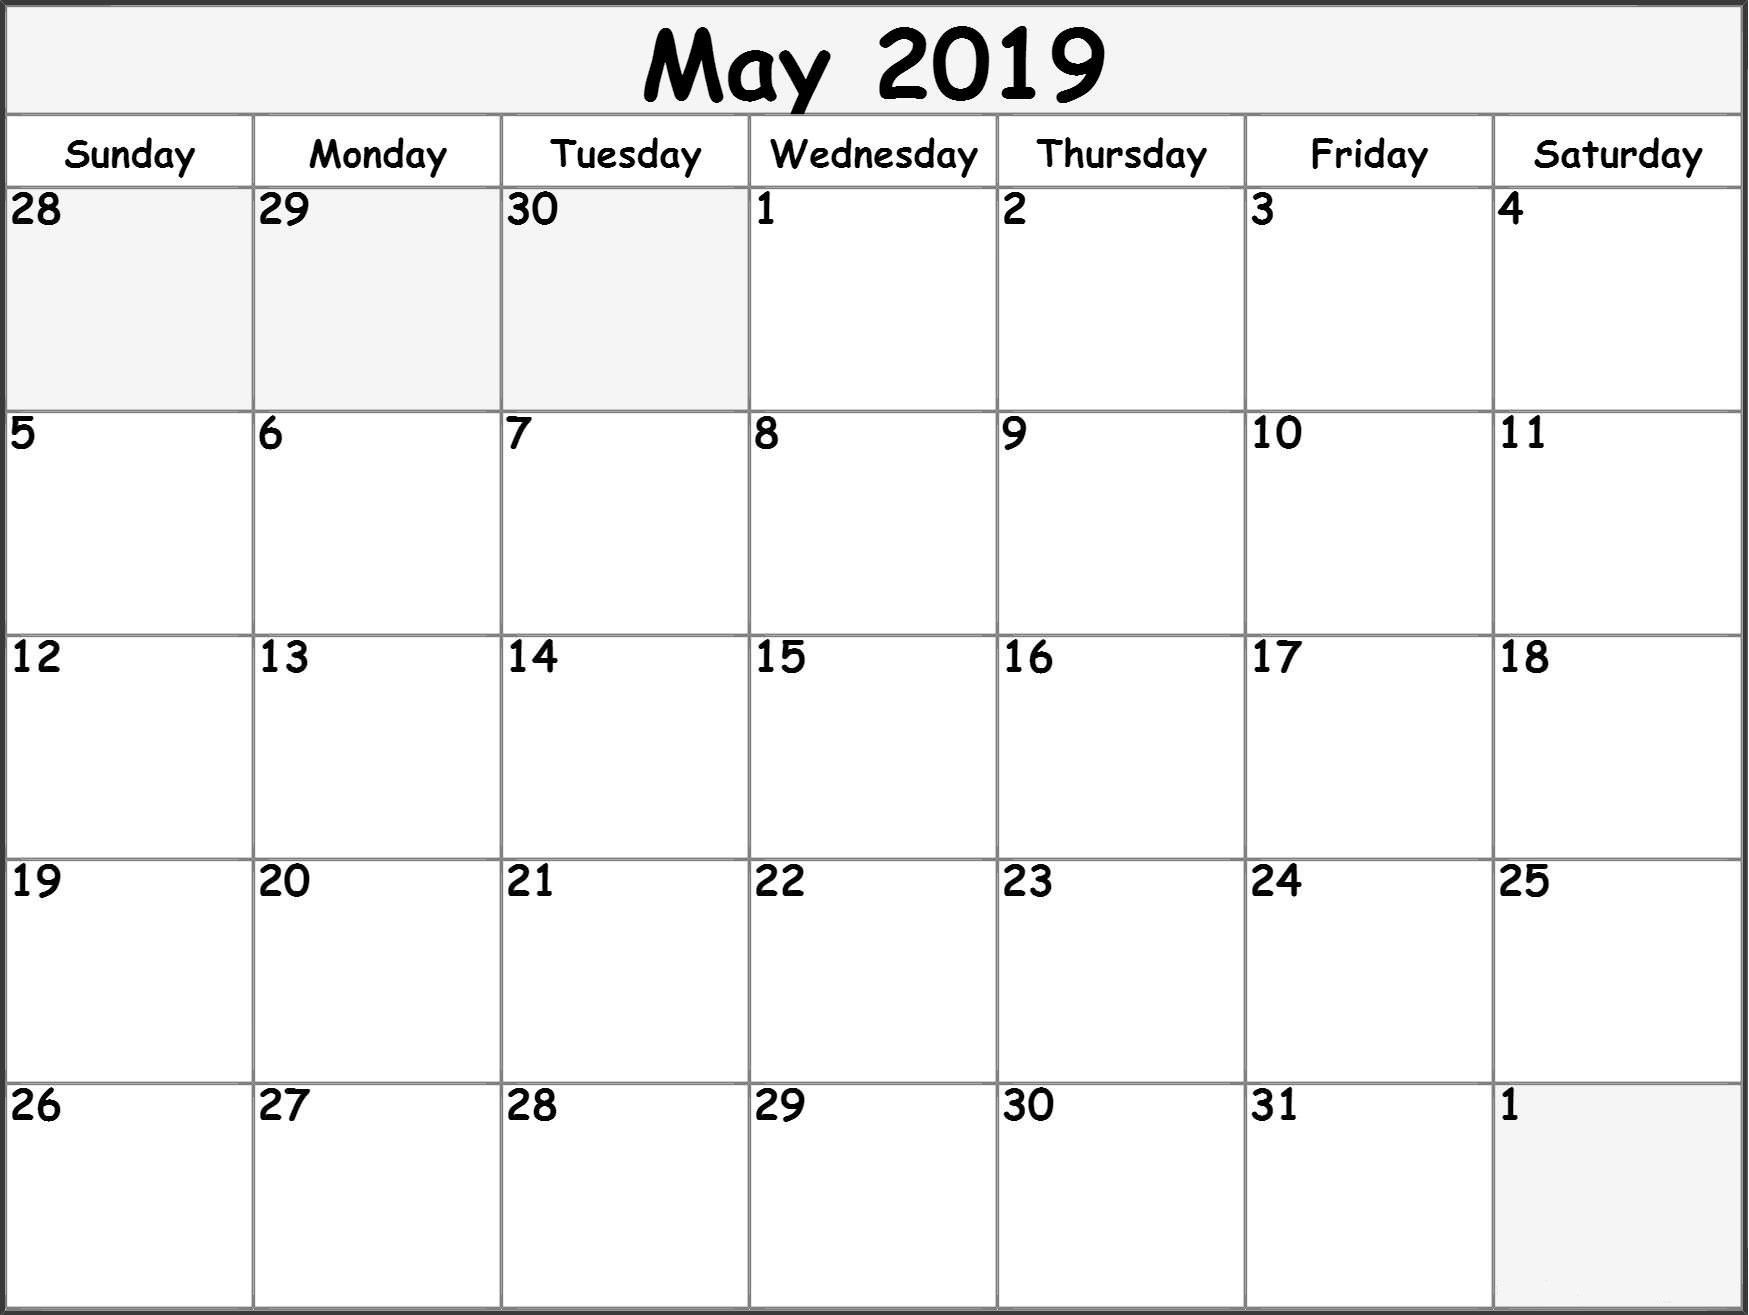 May 2019 Printable Calendar Templates - Free Blank, Pdf, Holidays regarding Blank Calendar Print-Outs Fill In With Holidays